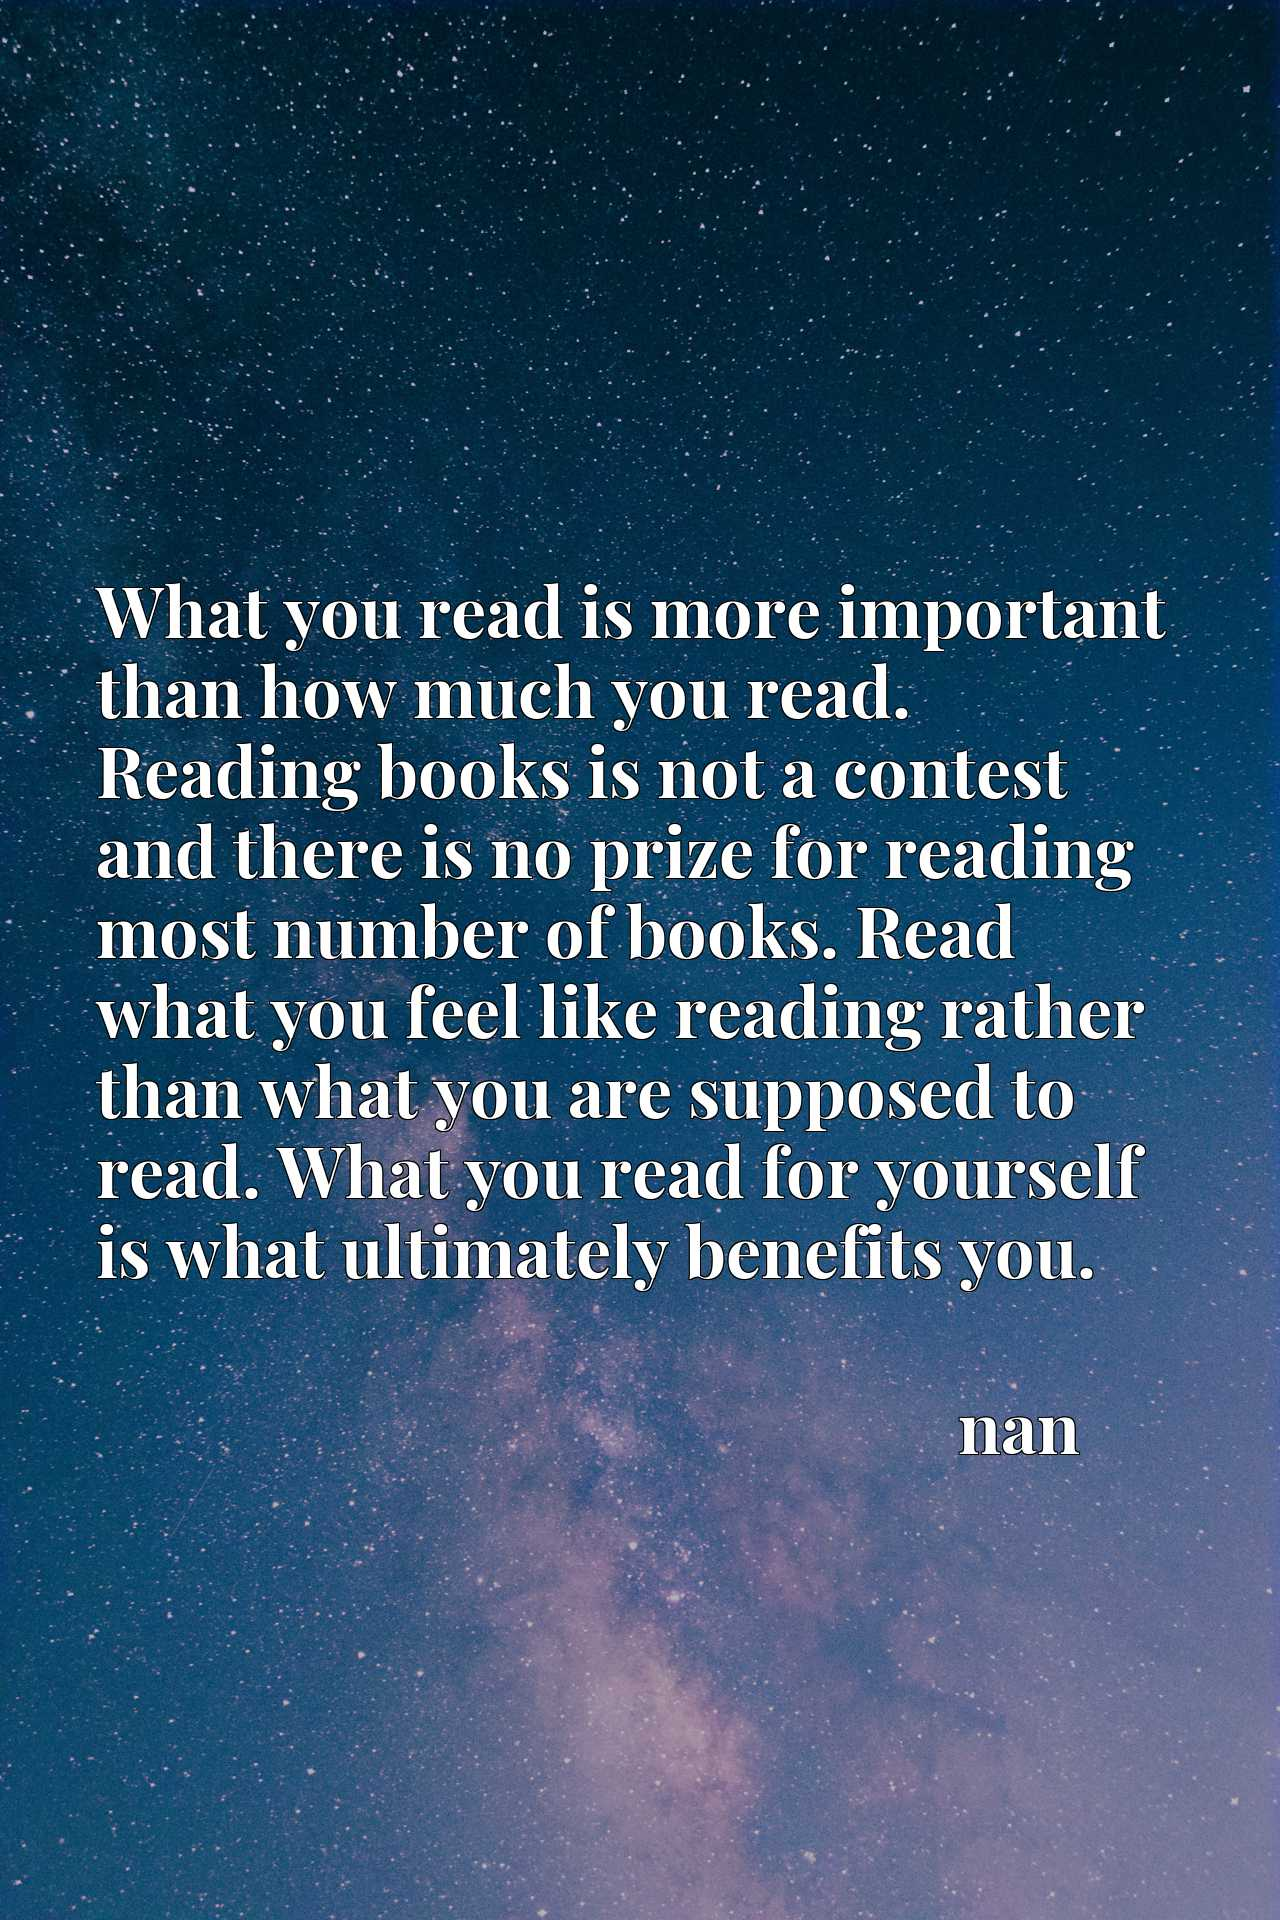 What you read is more important than how much you read. Reading books is not a contest and there is no prize for reading most number of books. Read what you feel like reading rather than what you are supposed to read. What you read for yourself is what ultimately benefits you.